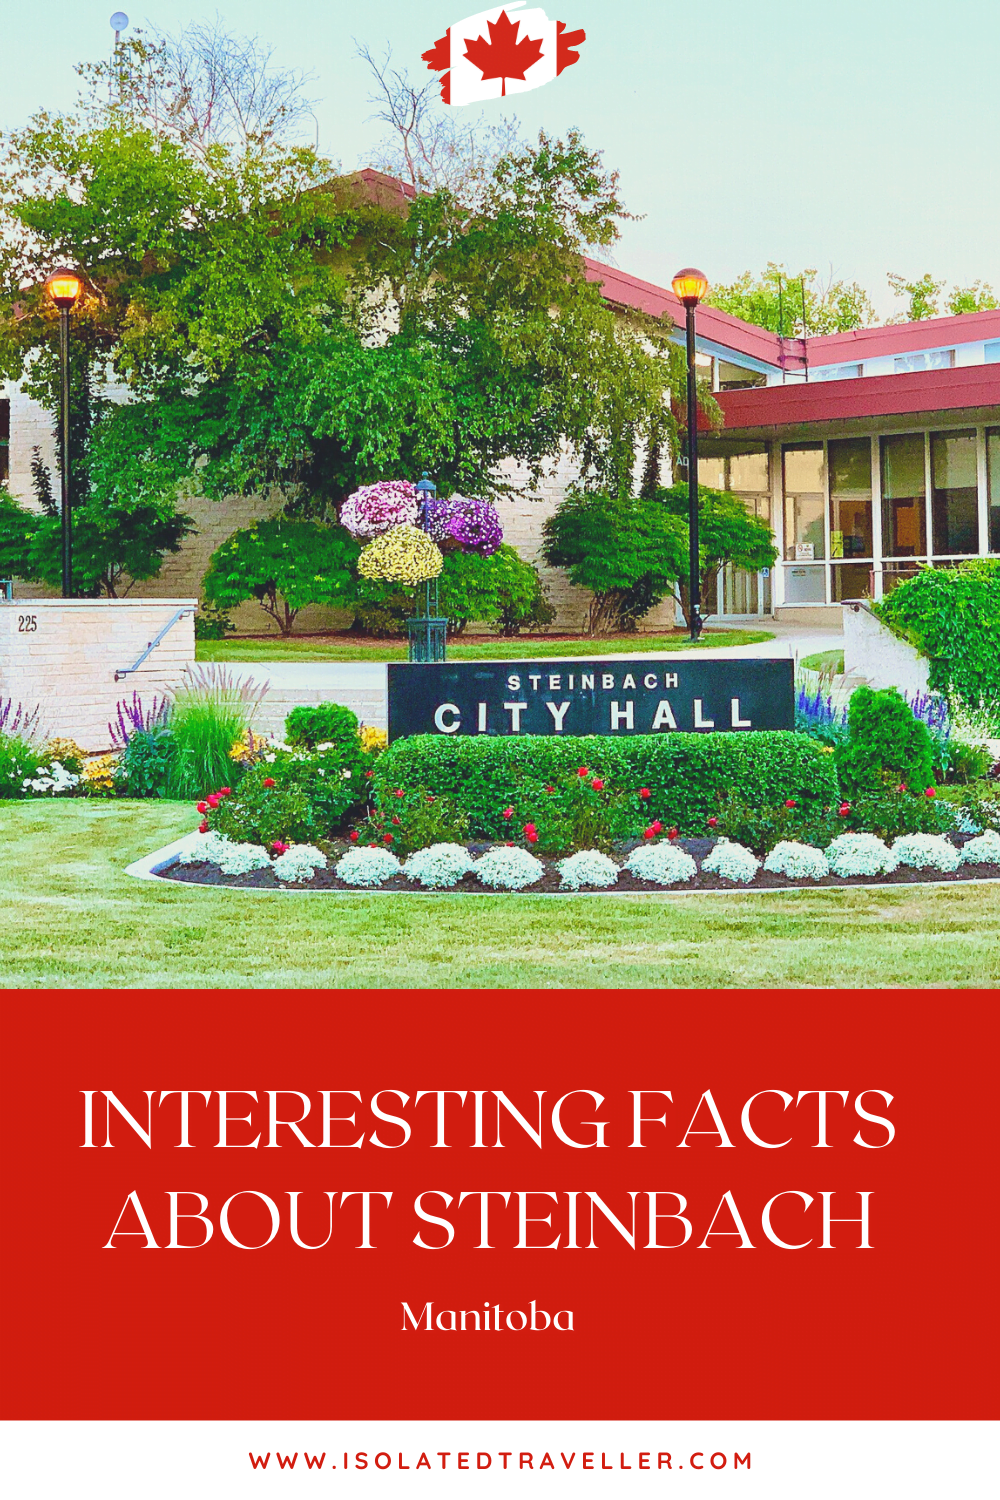 Facts About Steinbach